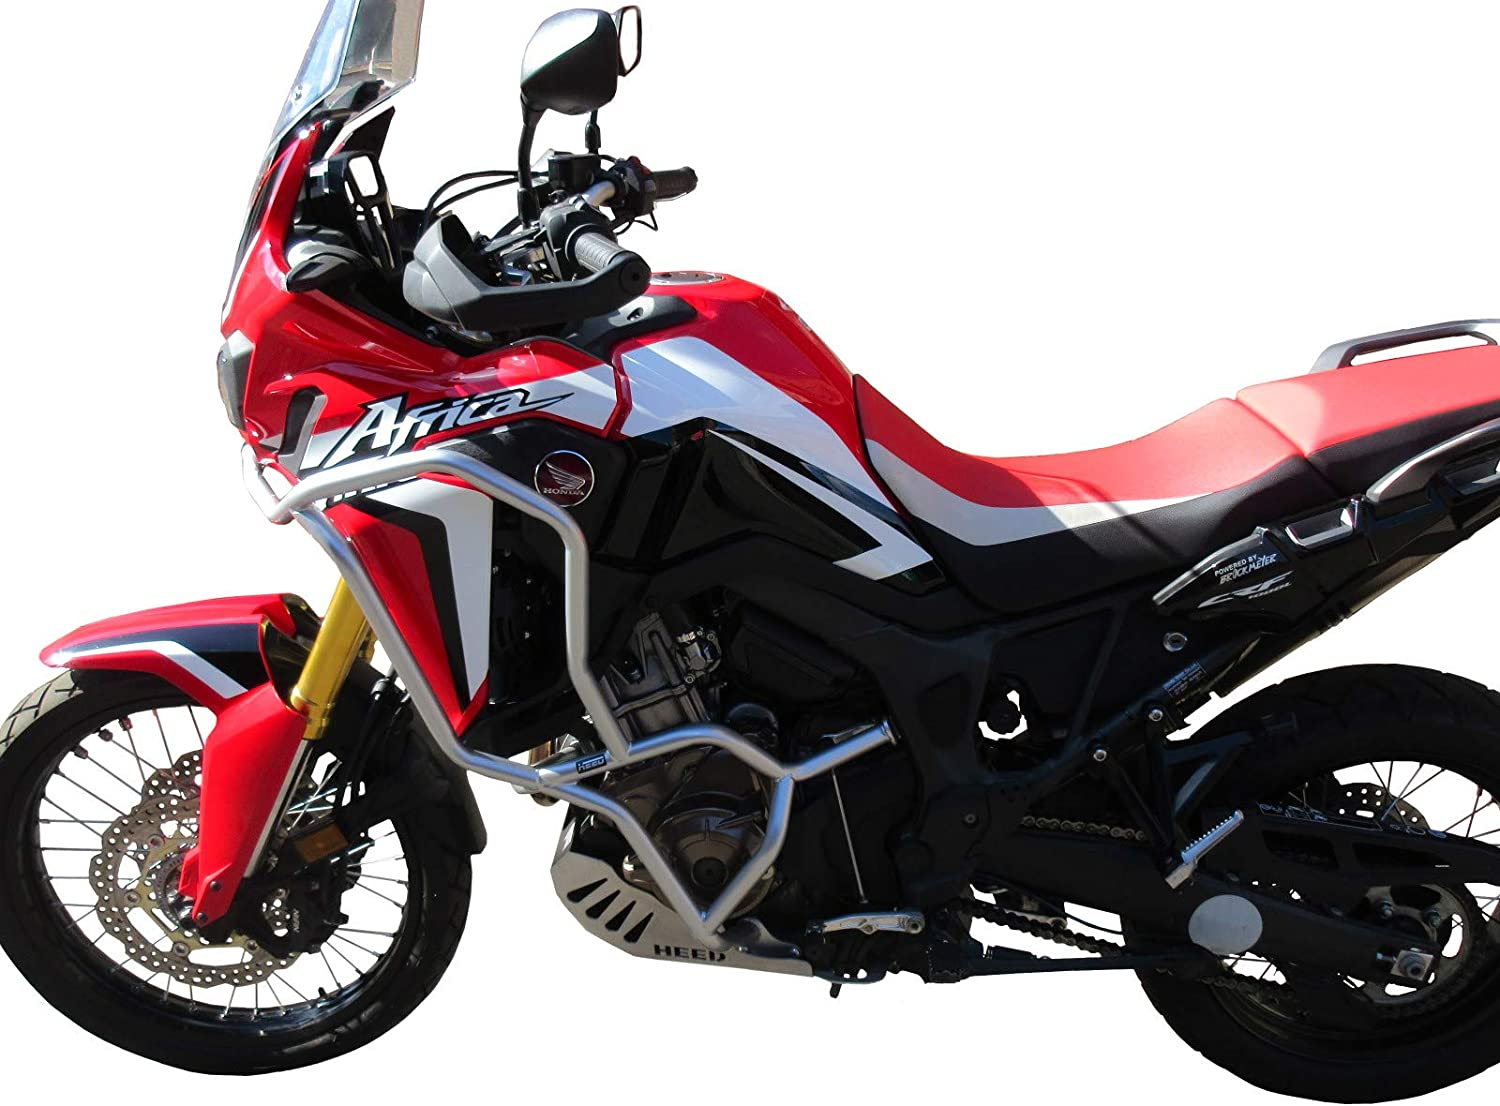 Pare carters HEED pour CRF 1000 Africa Twin Adventure Sports DCT Bunker argent/é